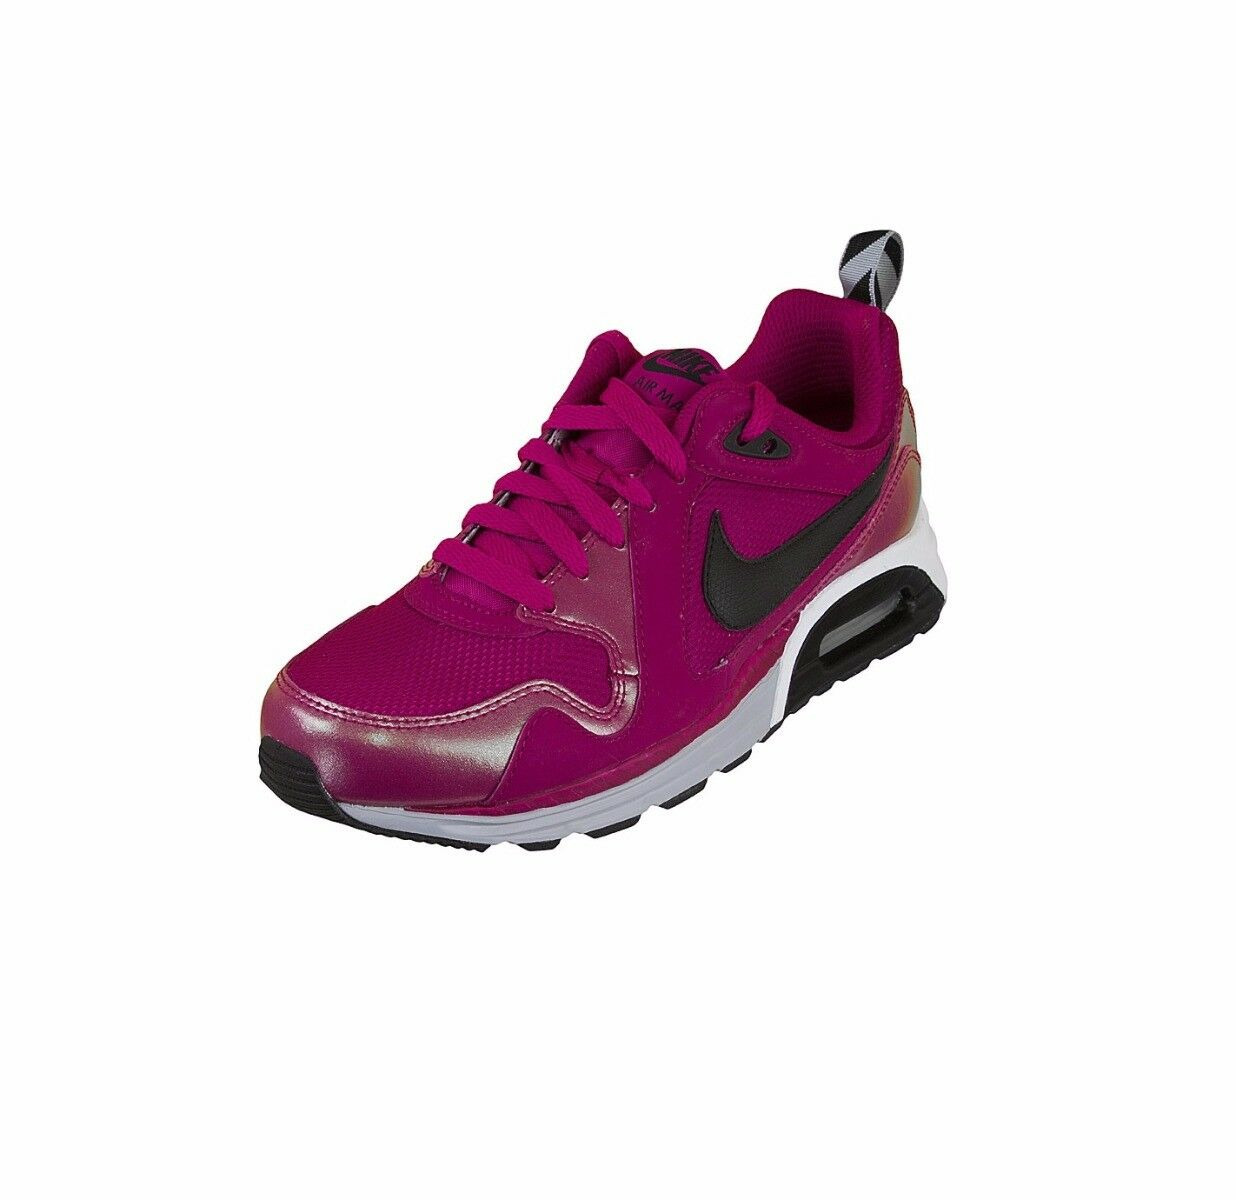 NIKE damen AIR MAX TRAX schuhe UK 5.5 RUNNING MAGENTA TRAINER schuhe   -